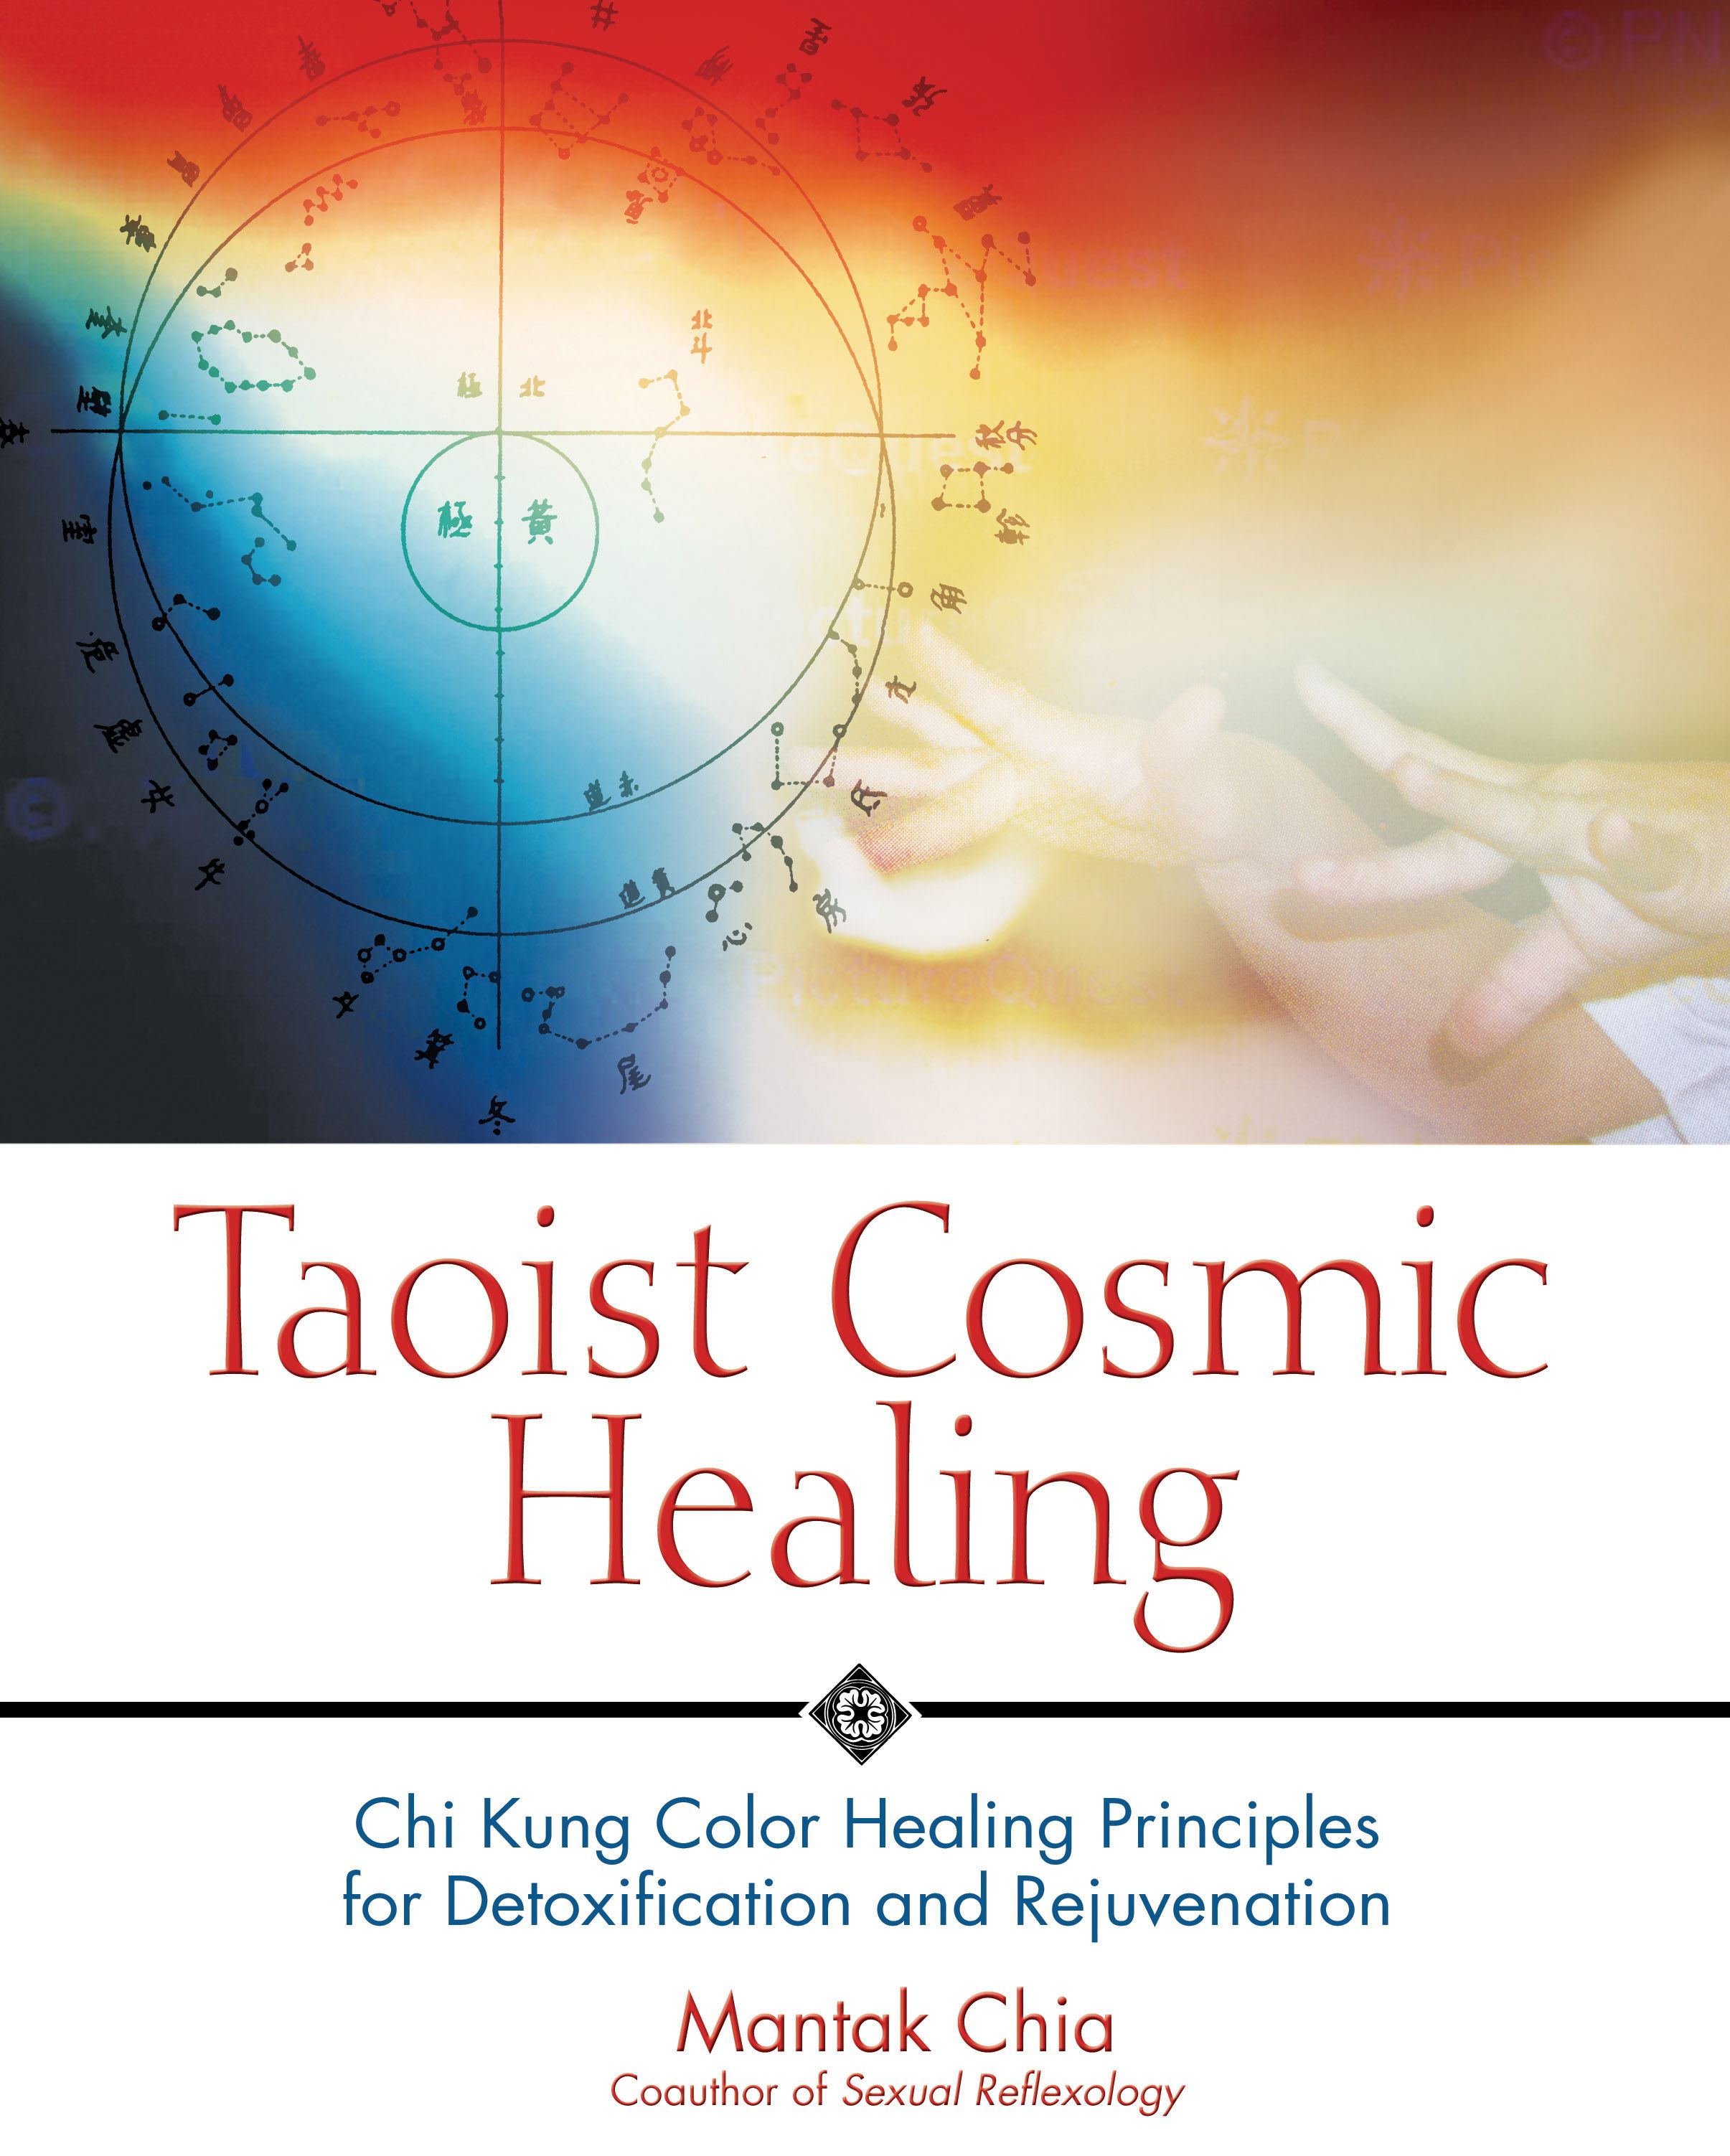 Sexual reflexology activating the taoist points of love